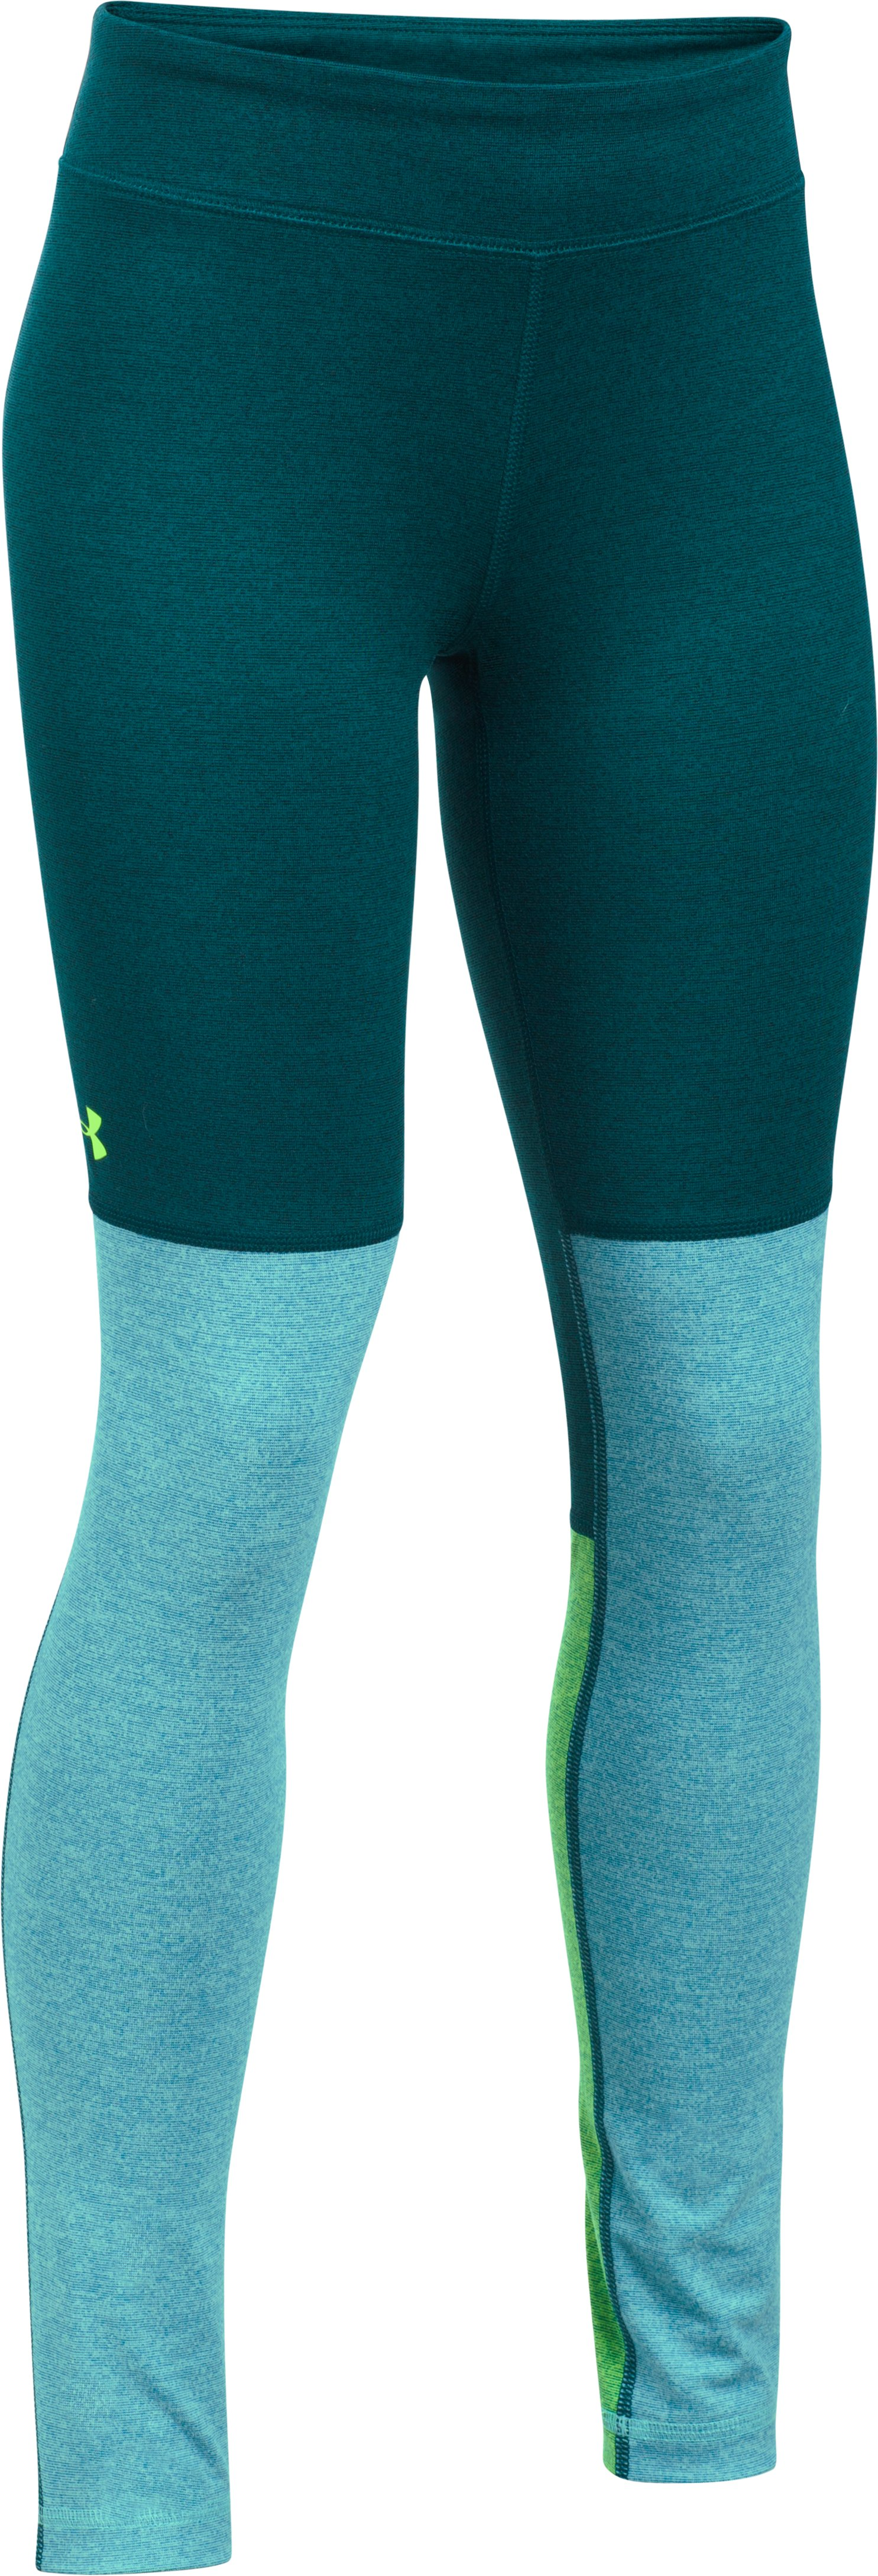 Girls' UA Studio Leggings, ARDEN GREEN, zoomed image